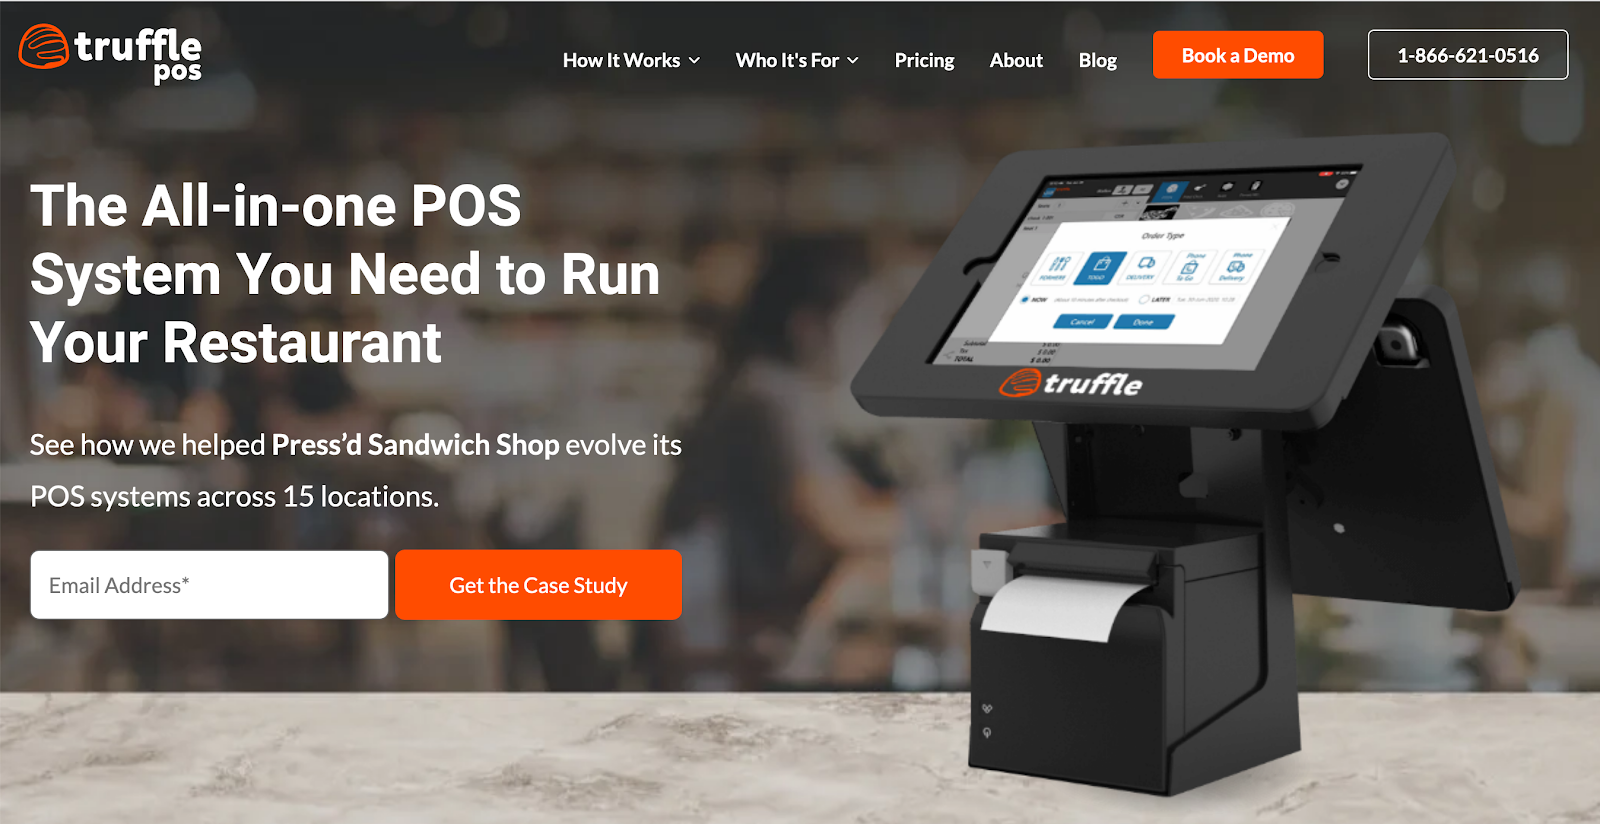 The Truffle POS Homepage shows what the POS system looks like